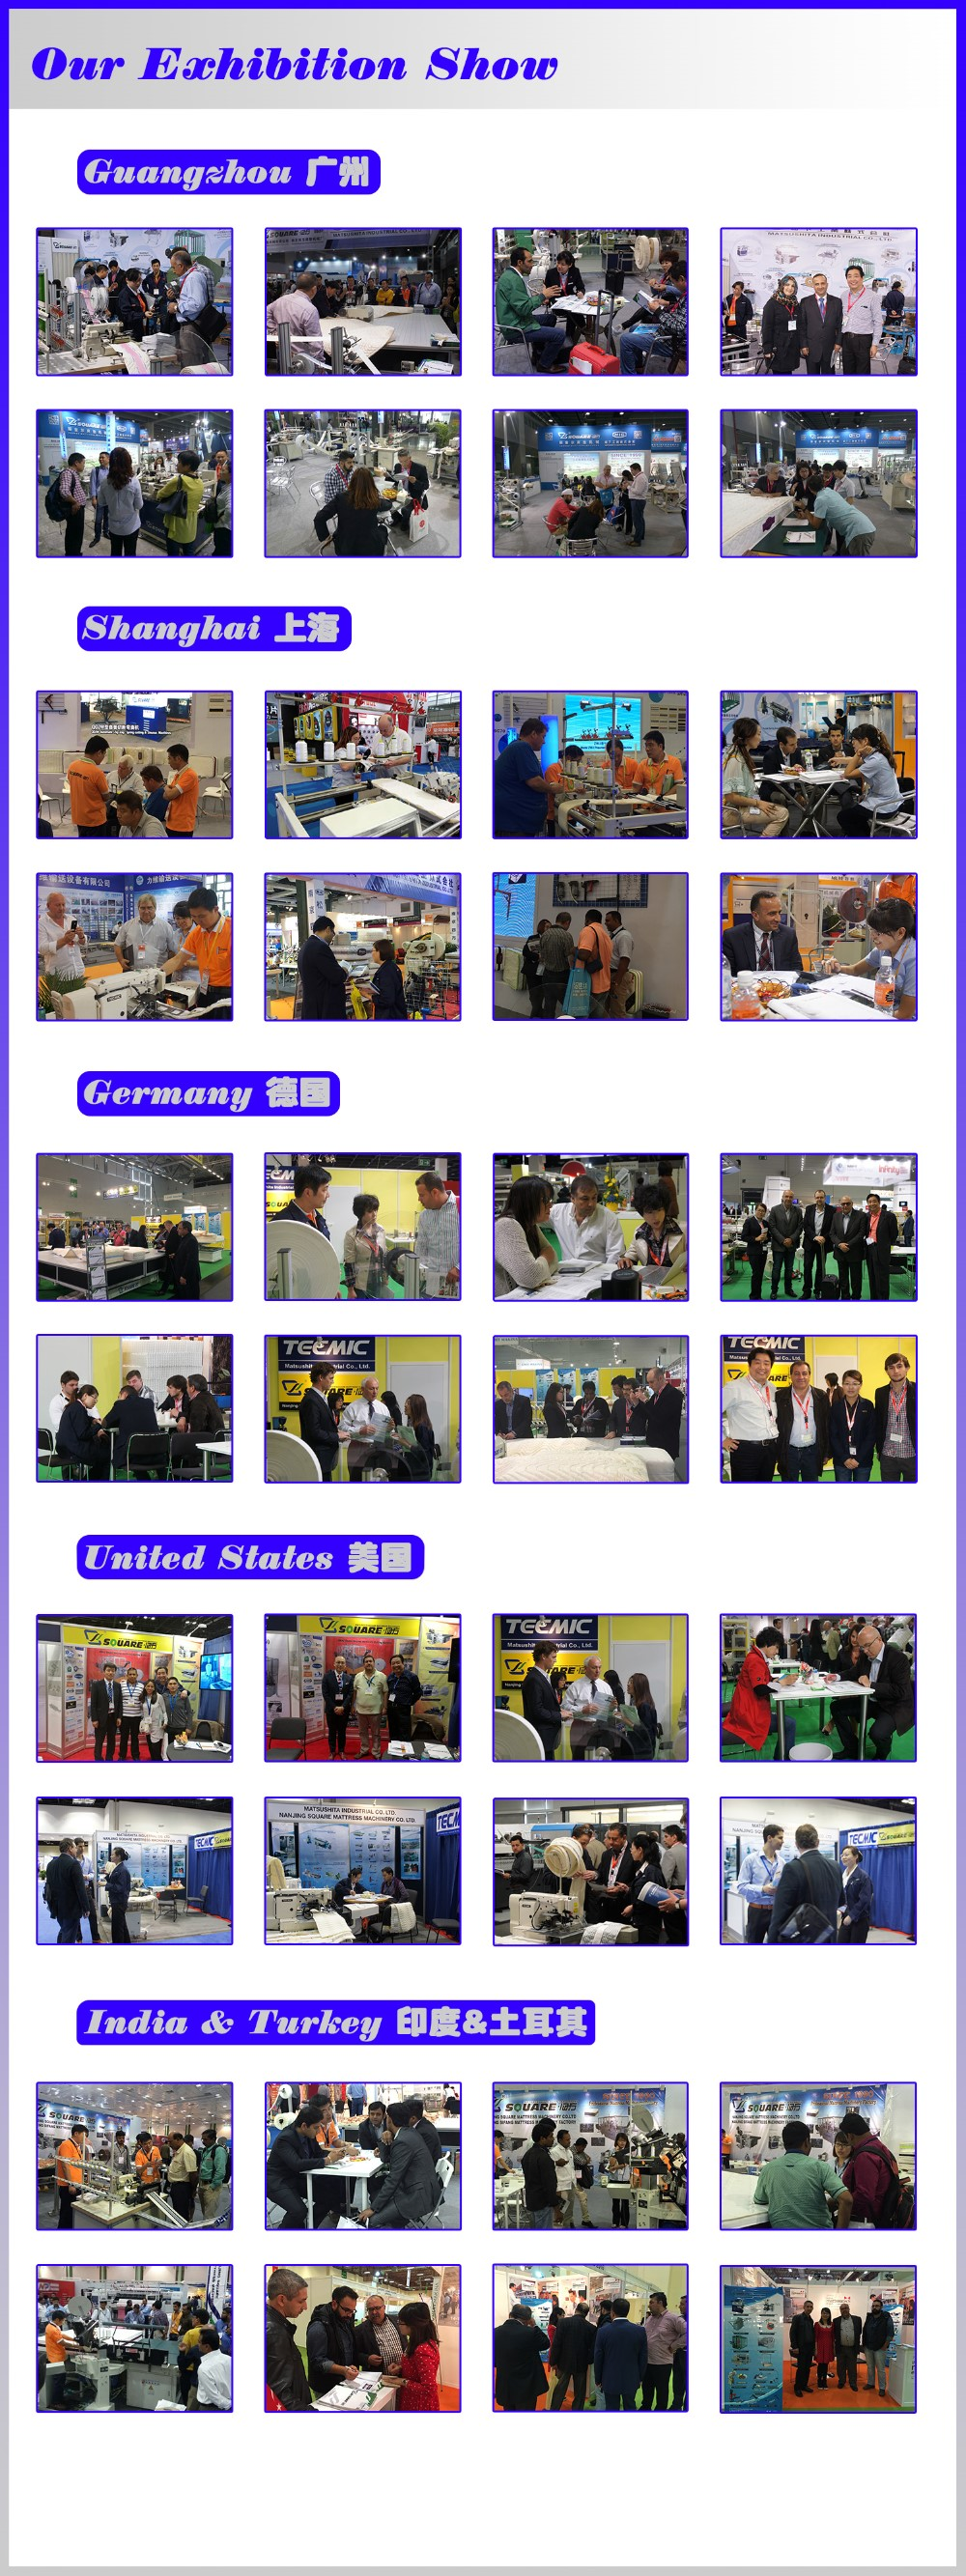 Our exhibition show